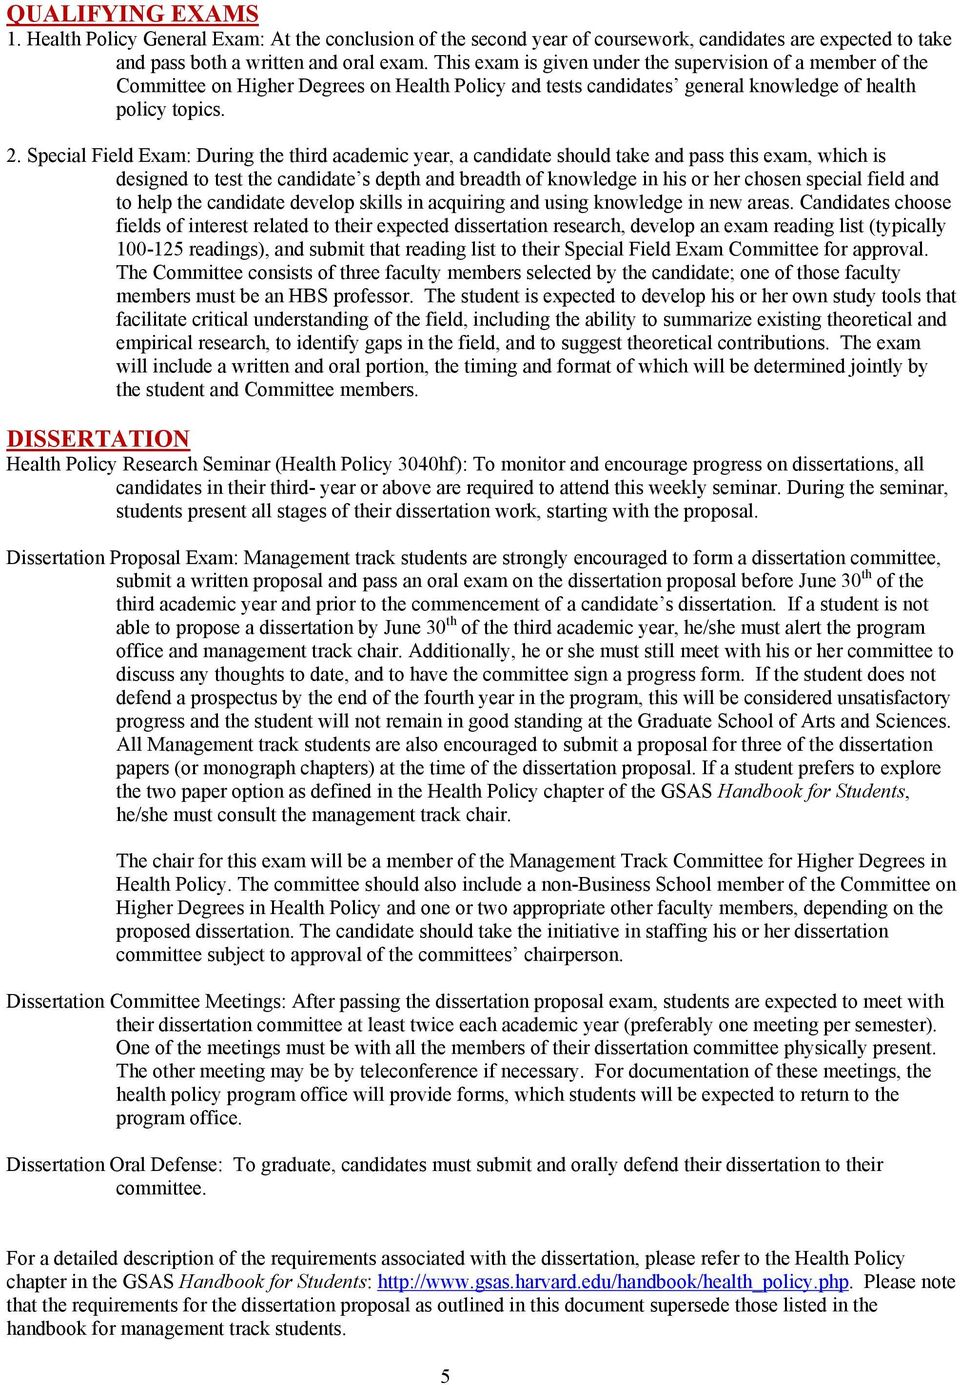 Help me write professional college essay on founding fathers